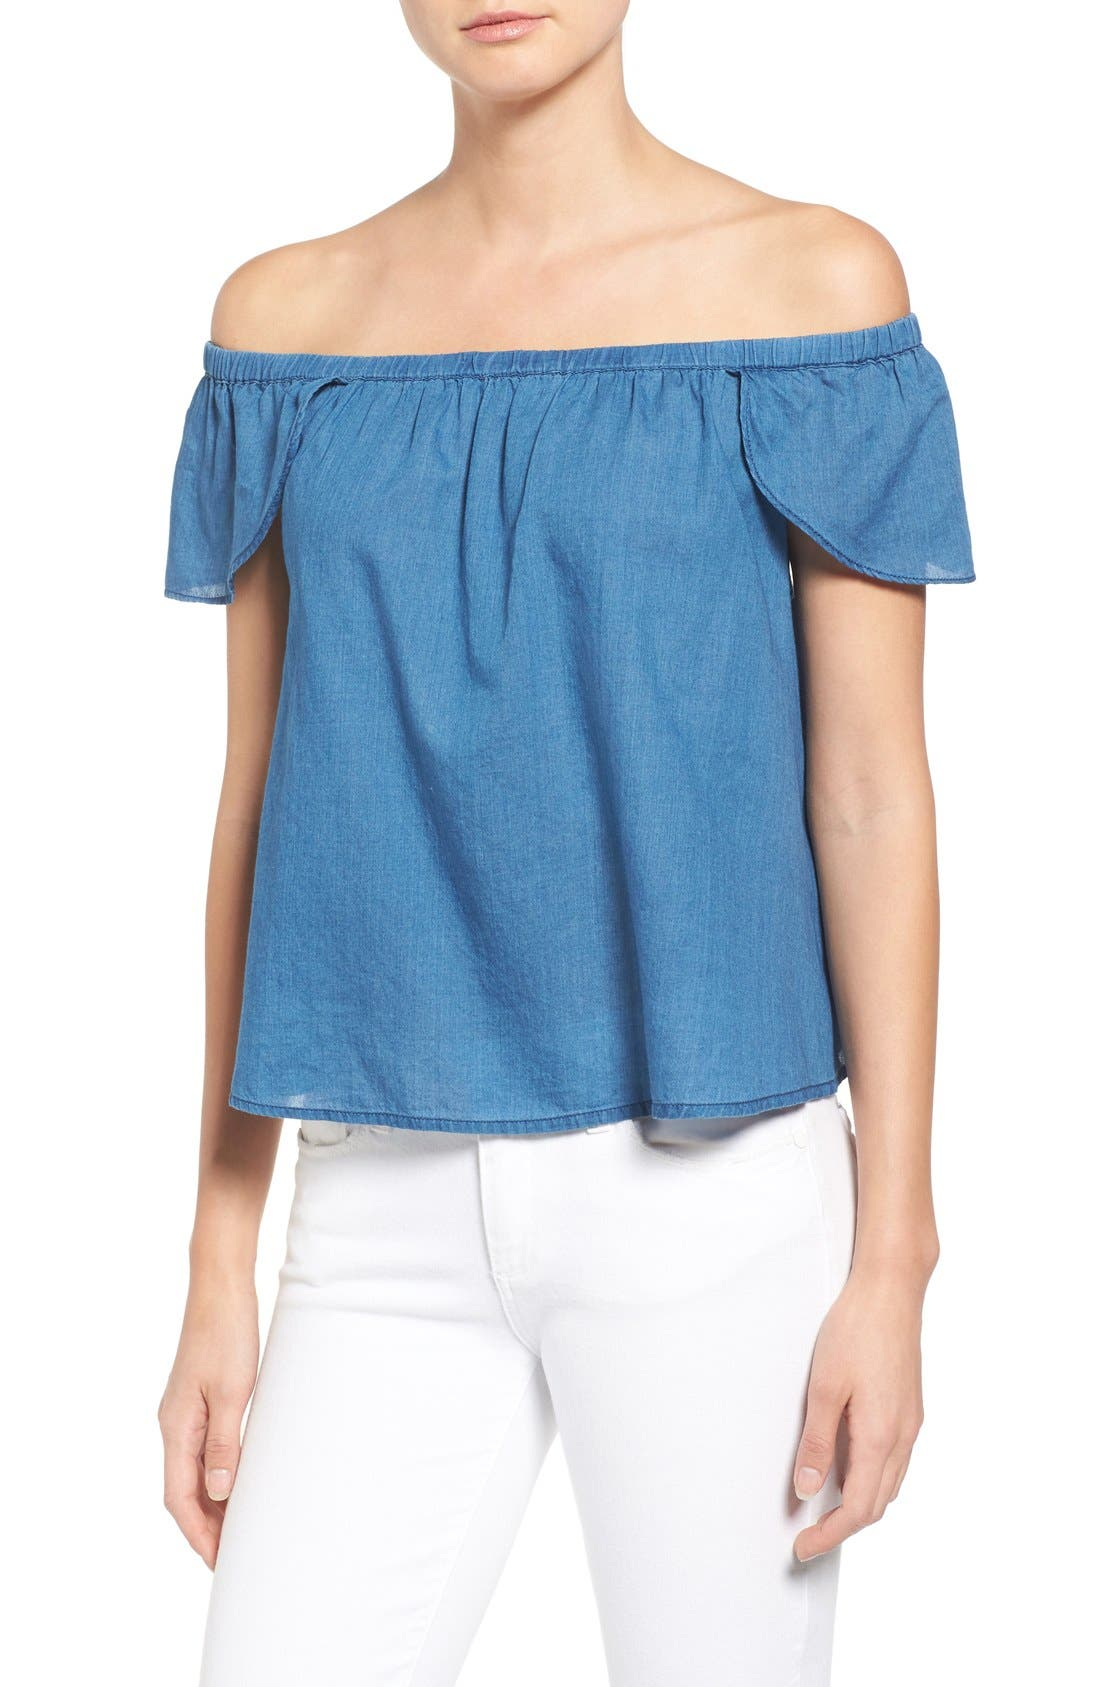 Alternate Image 1 Selected - Madewell Off the Shoulder Cotton Top